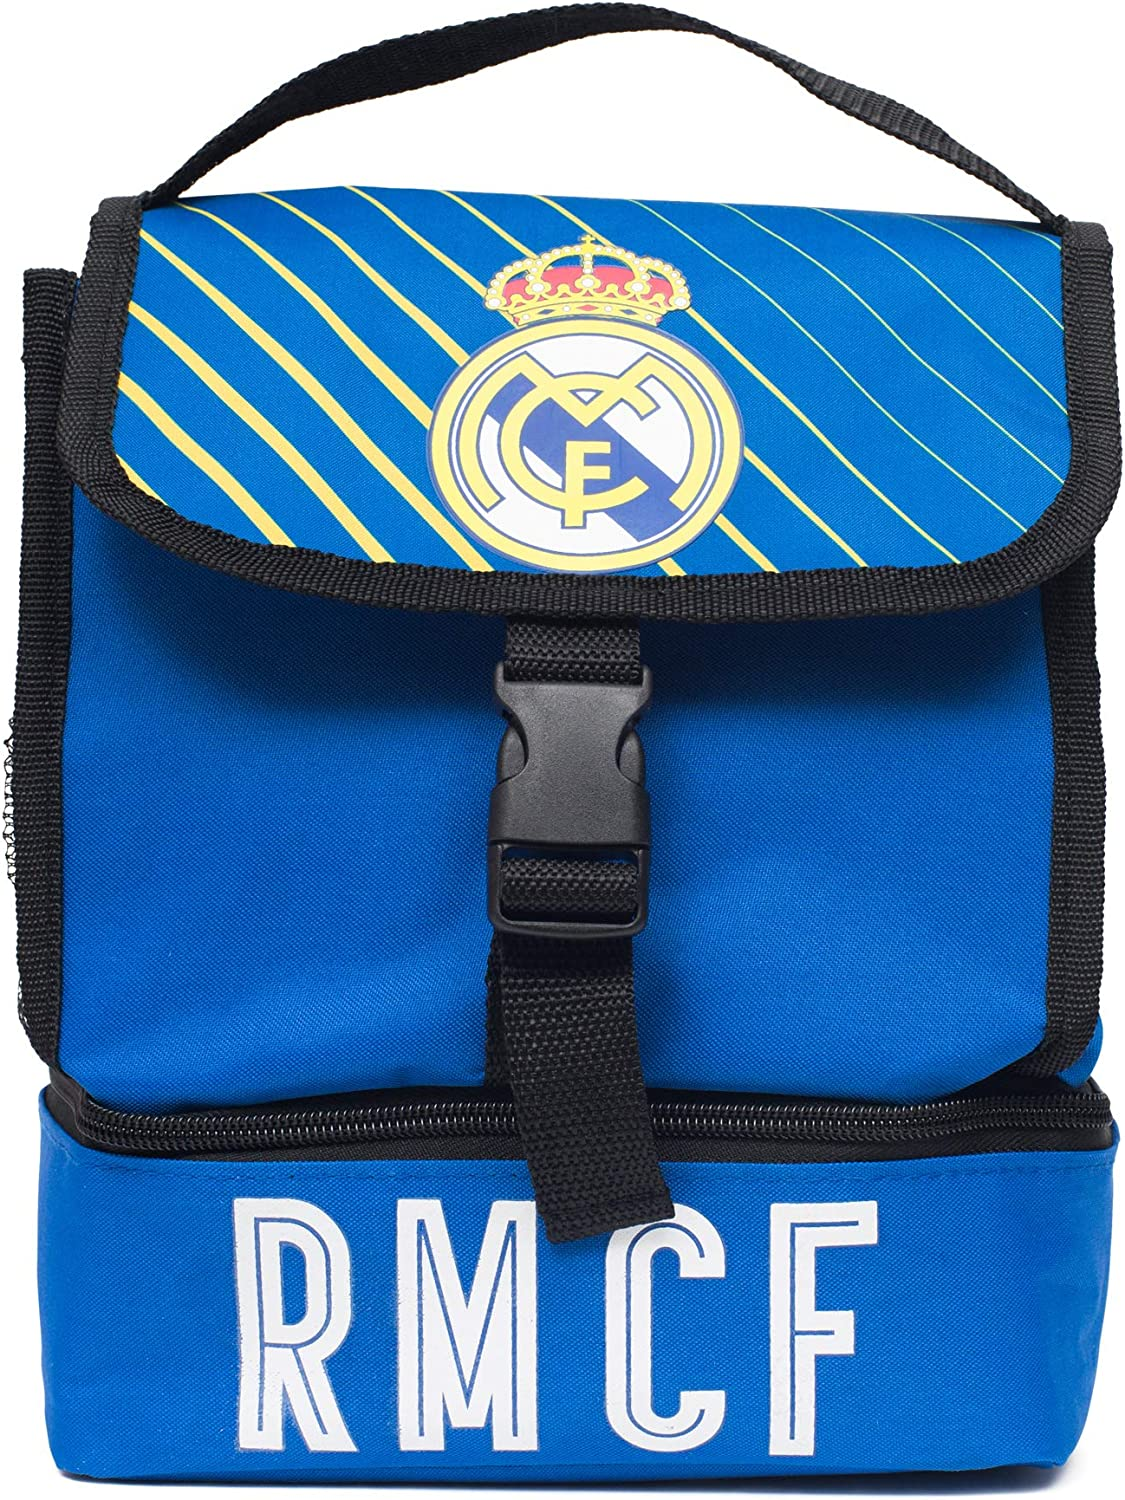 Maccabi Art Latest item Officially Licensed shop Real Bag CF Lunch Madrid